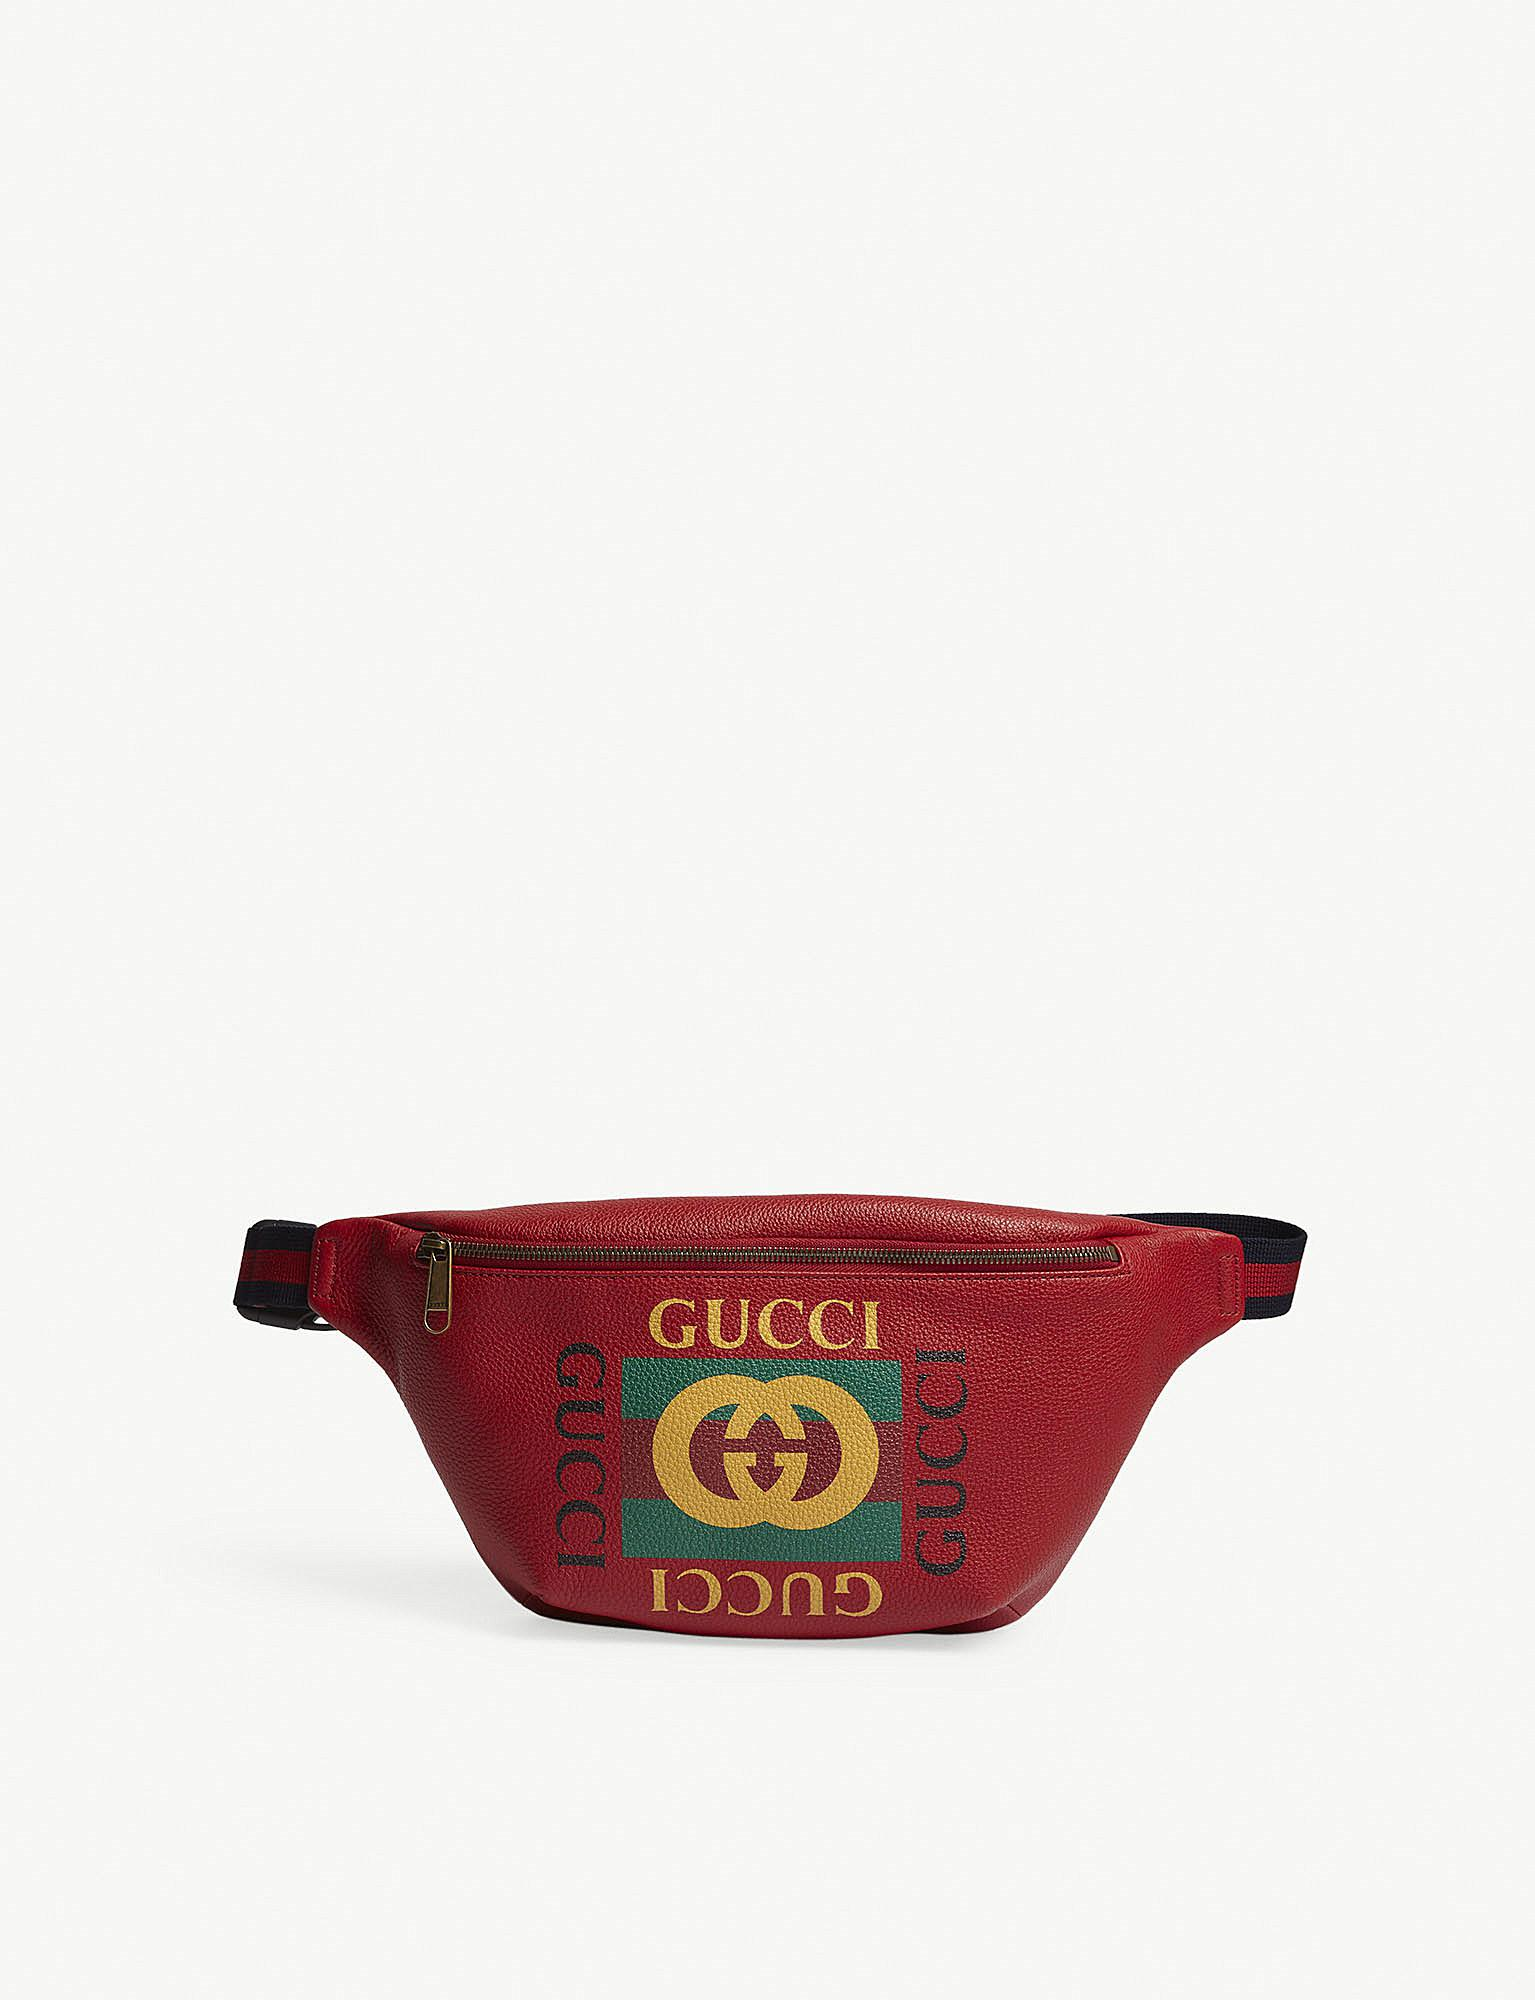 23c5c1f0183 Lyst - Gucci Logo Grained Leather Bumbag in Red